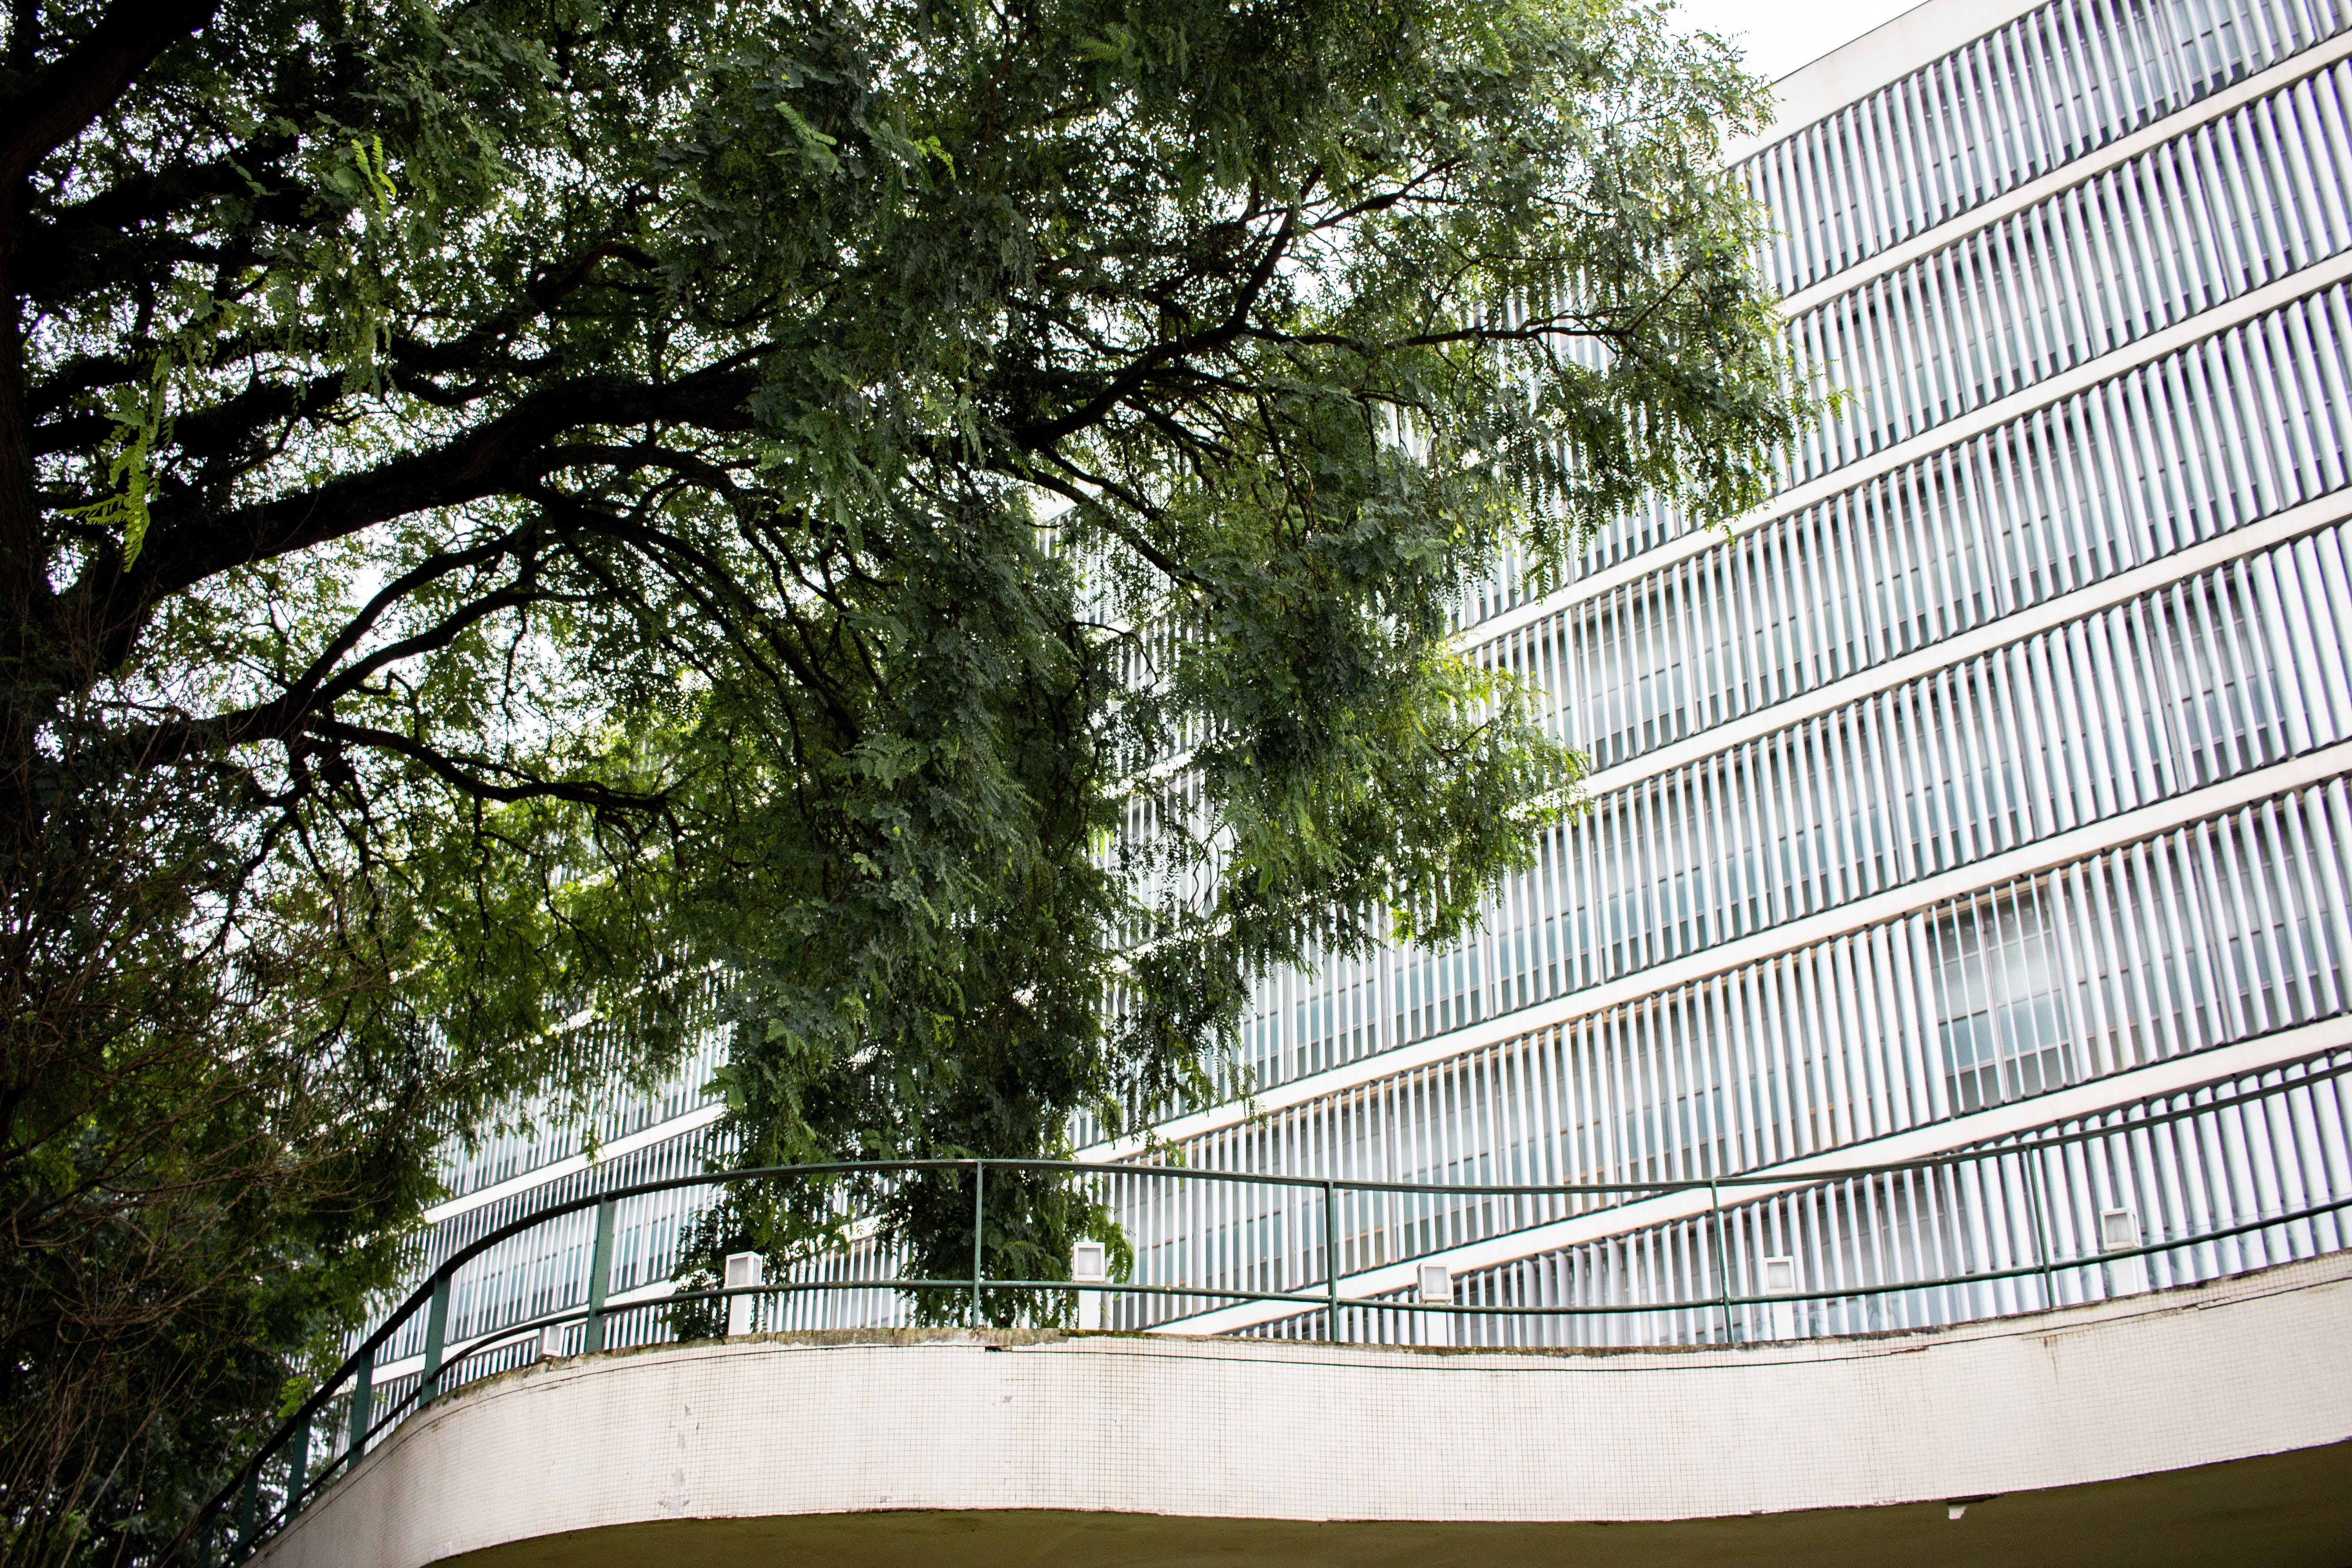 Green-leafed Tree Near Concrete Building